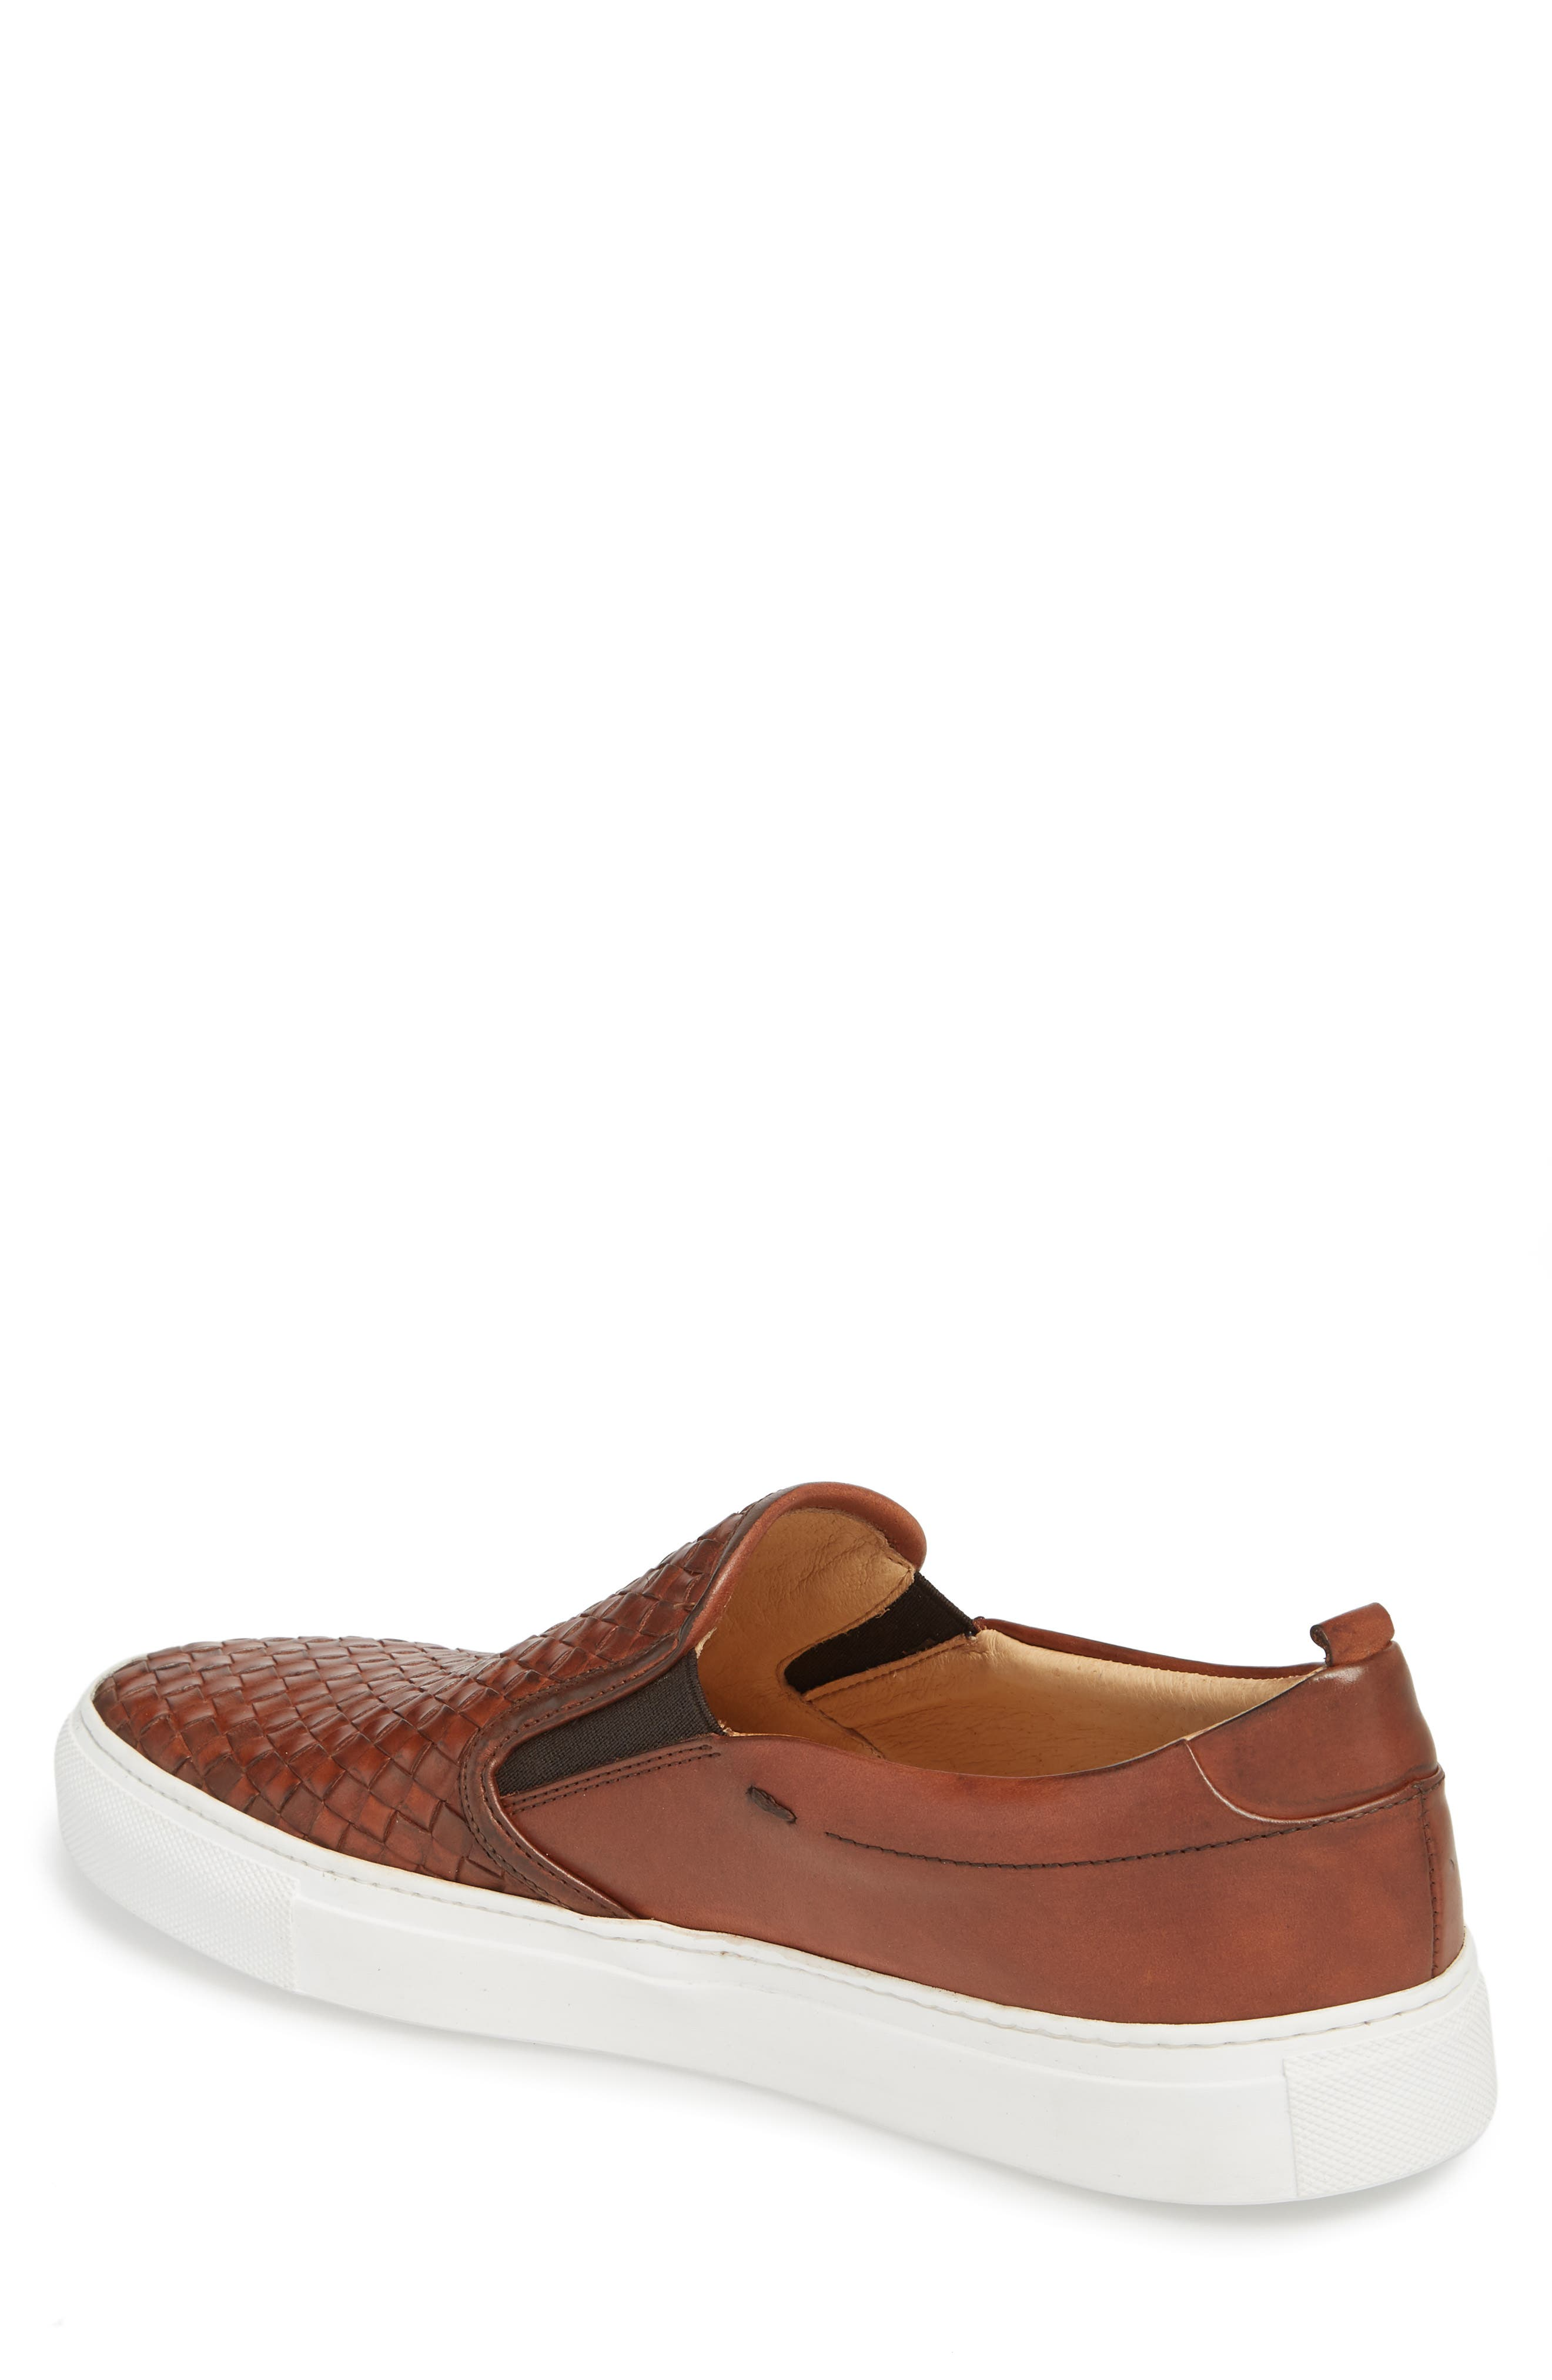 Grifyn Woven Slip-On Sneaker,                             Alternate thumbnail 2, color,                             Cognac Leather